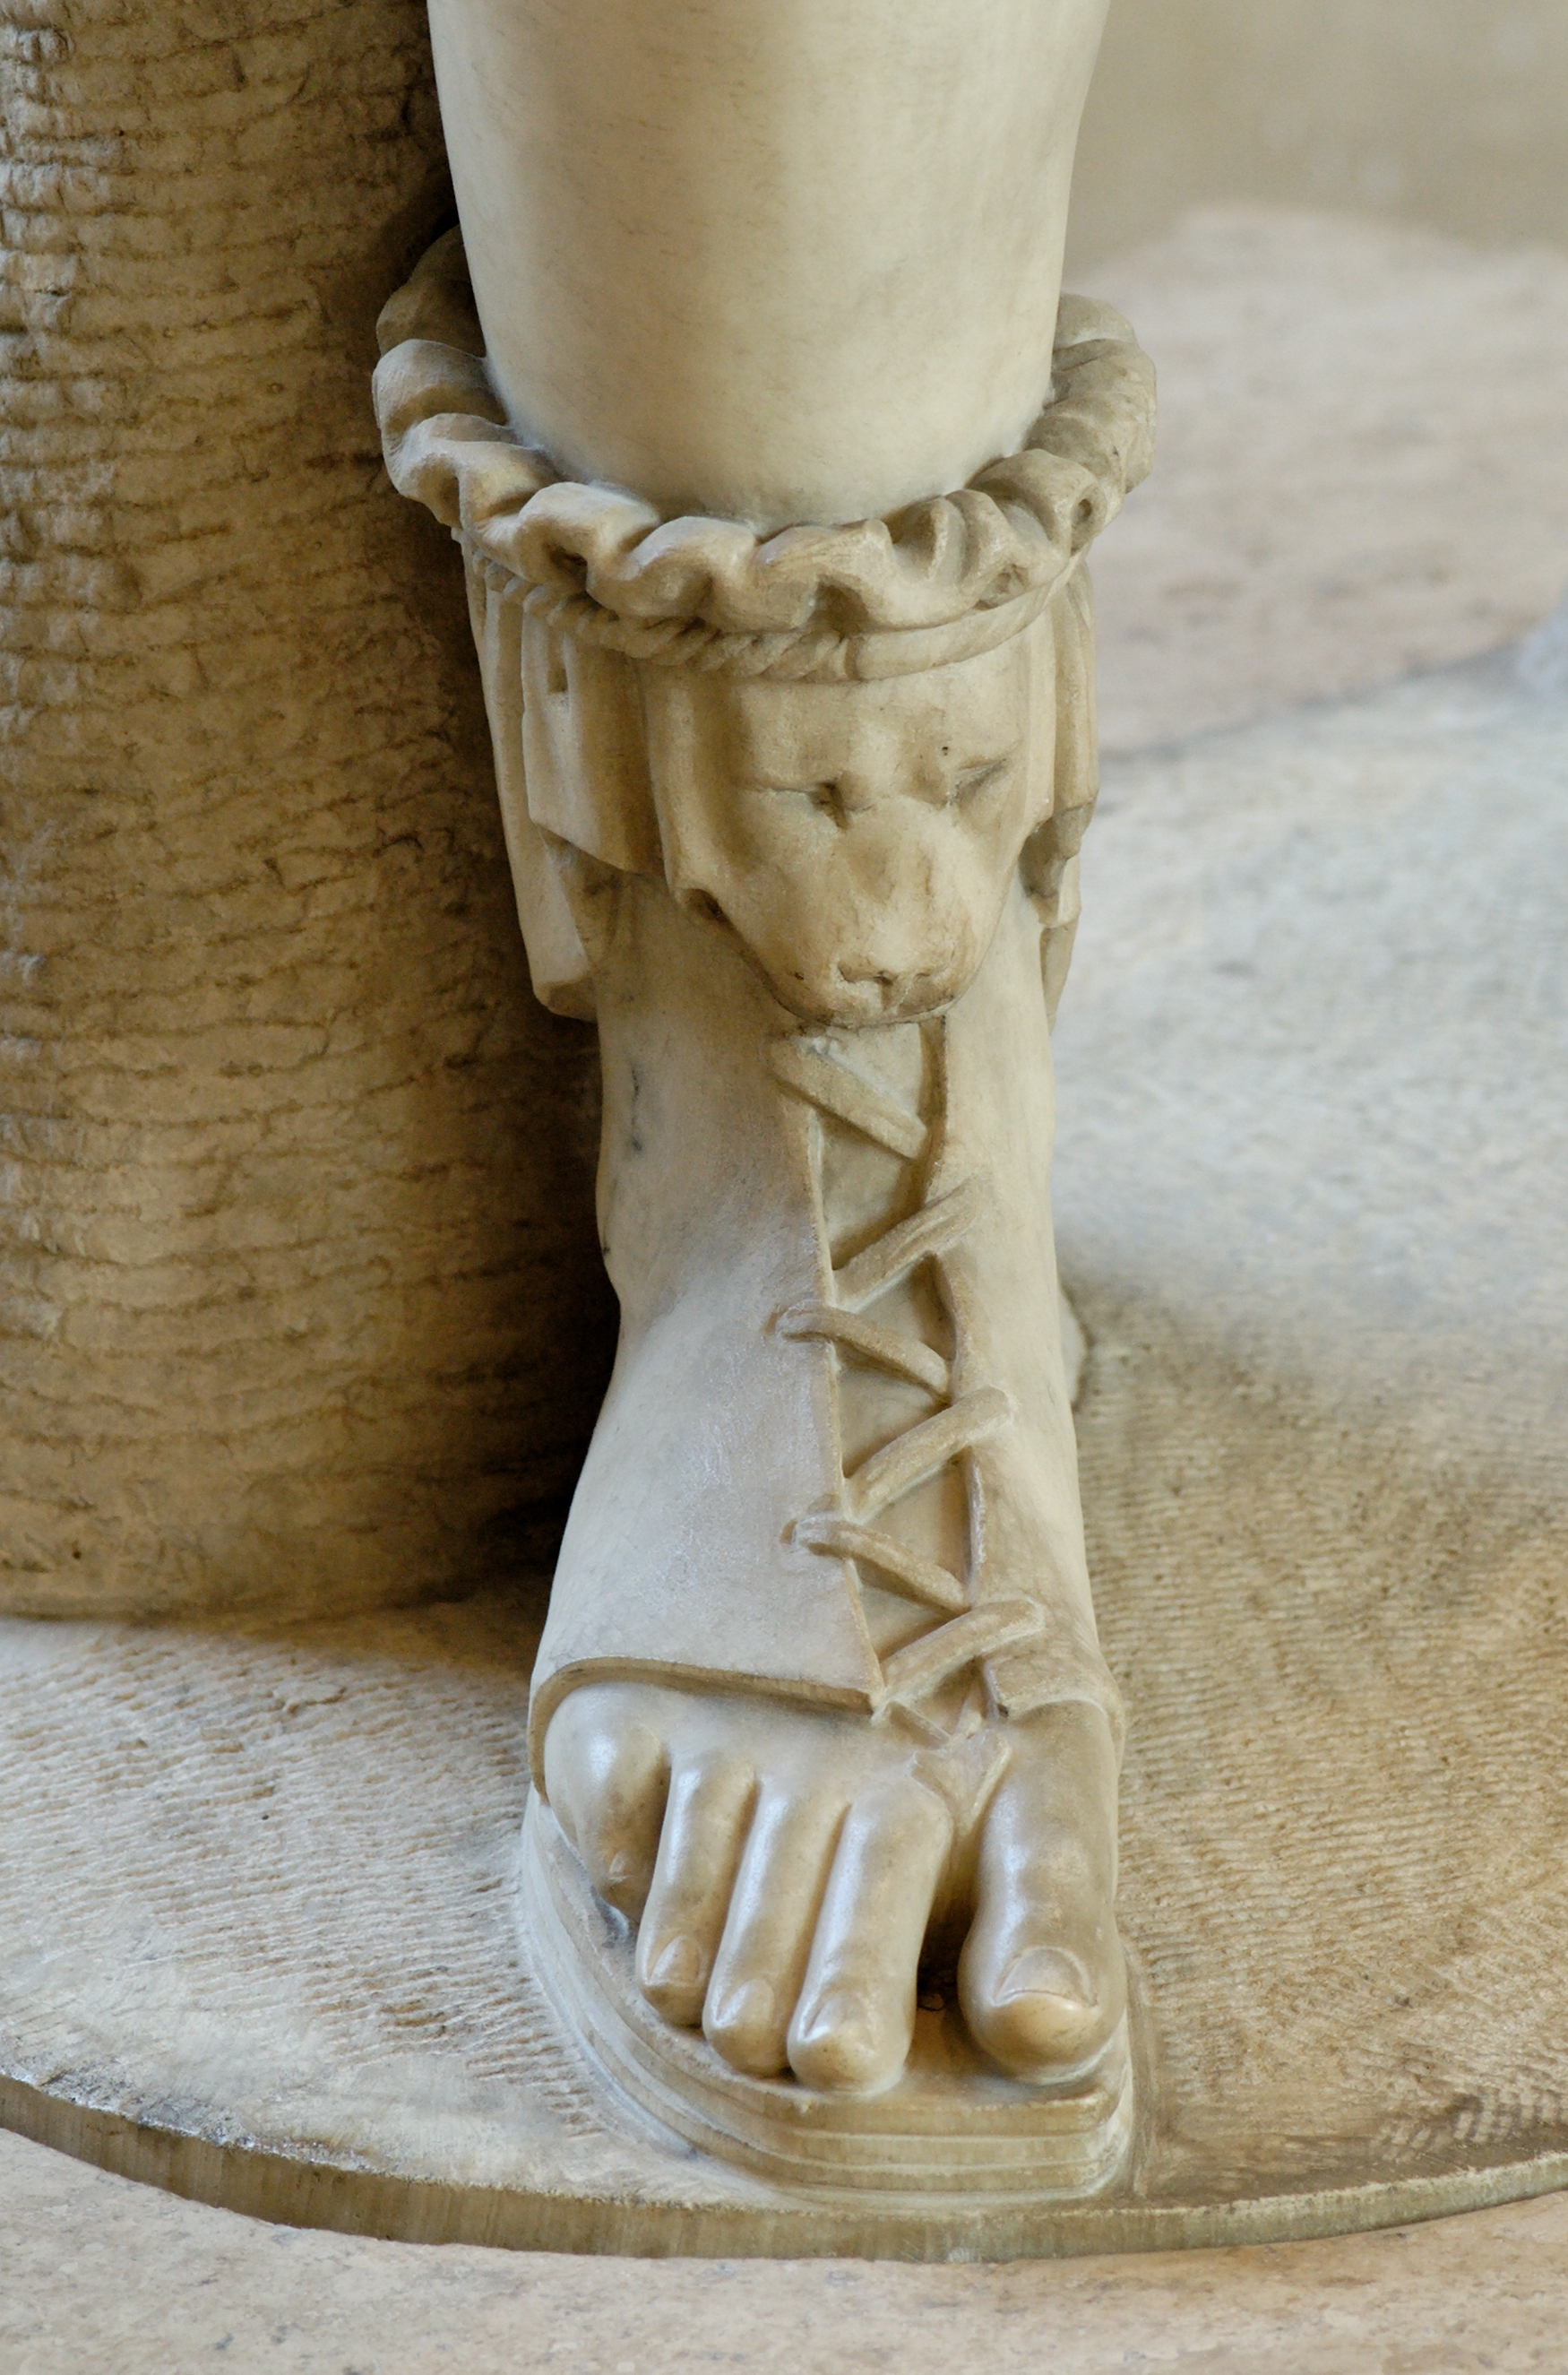 Bike gloves for bike cycling Sunday: Ancient Rome remains ...